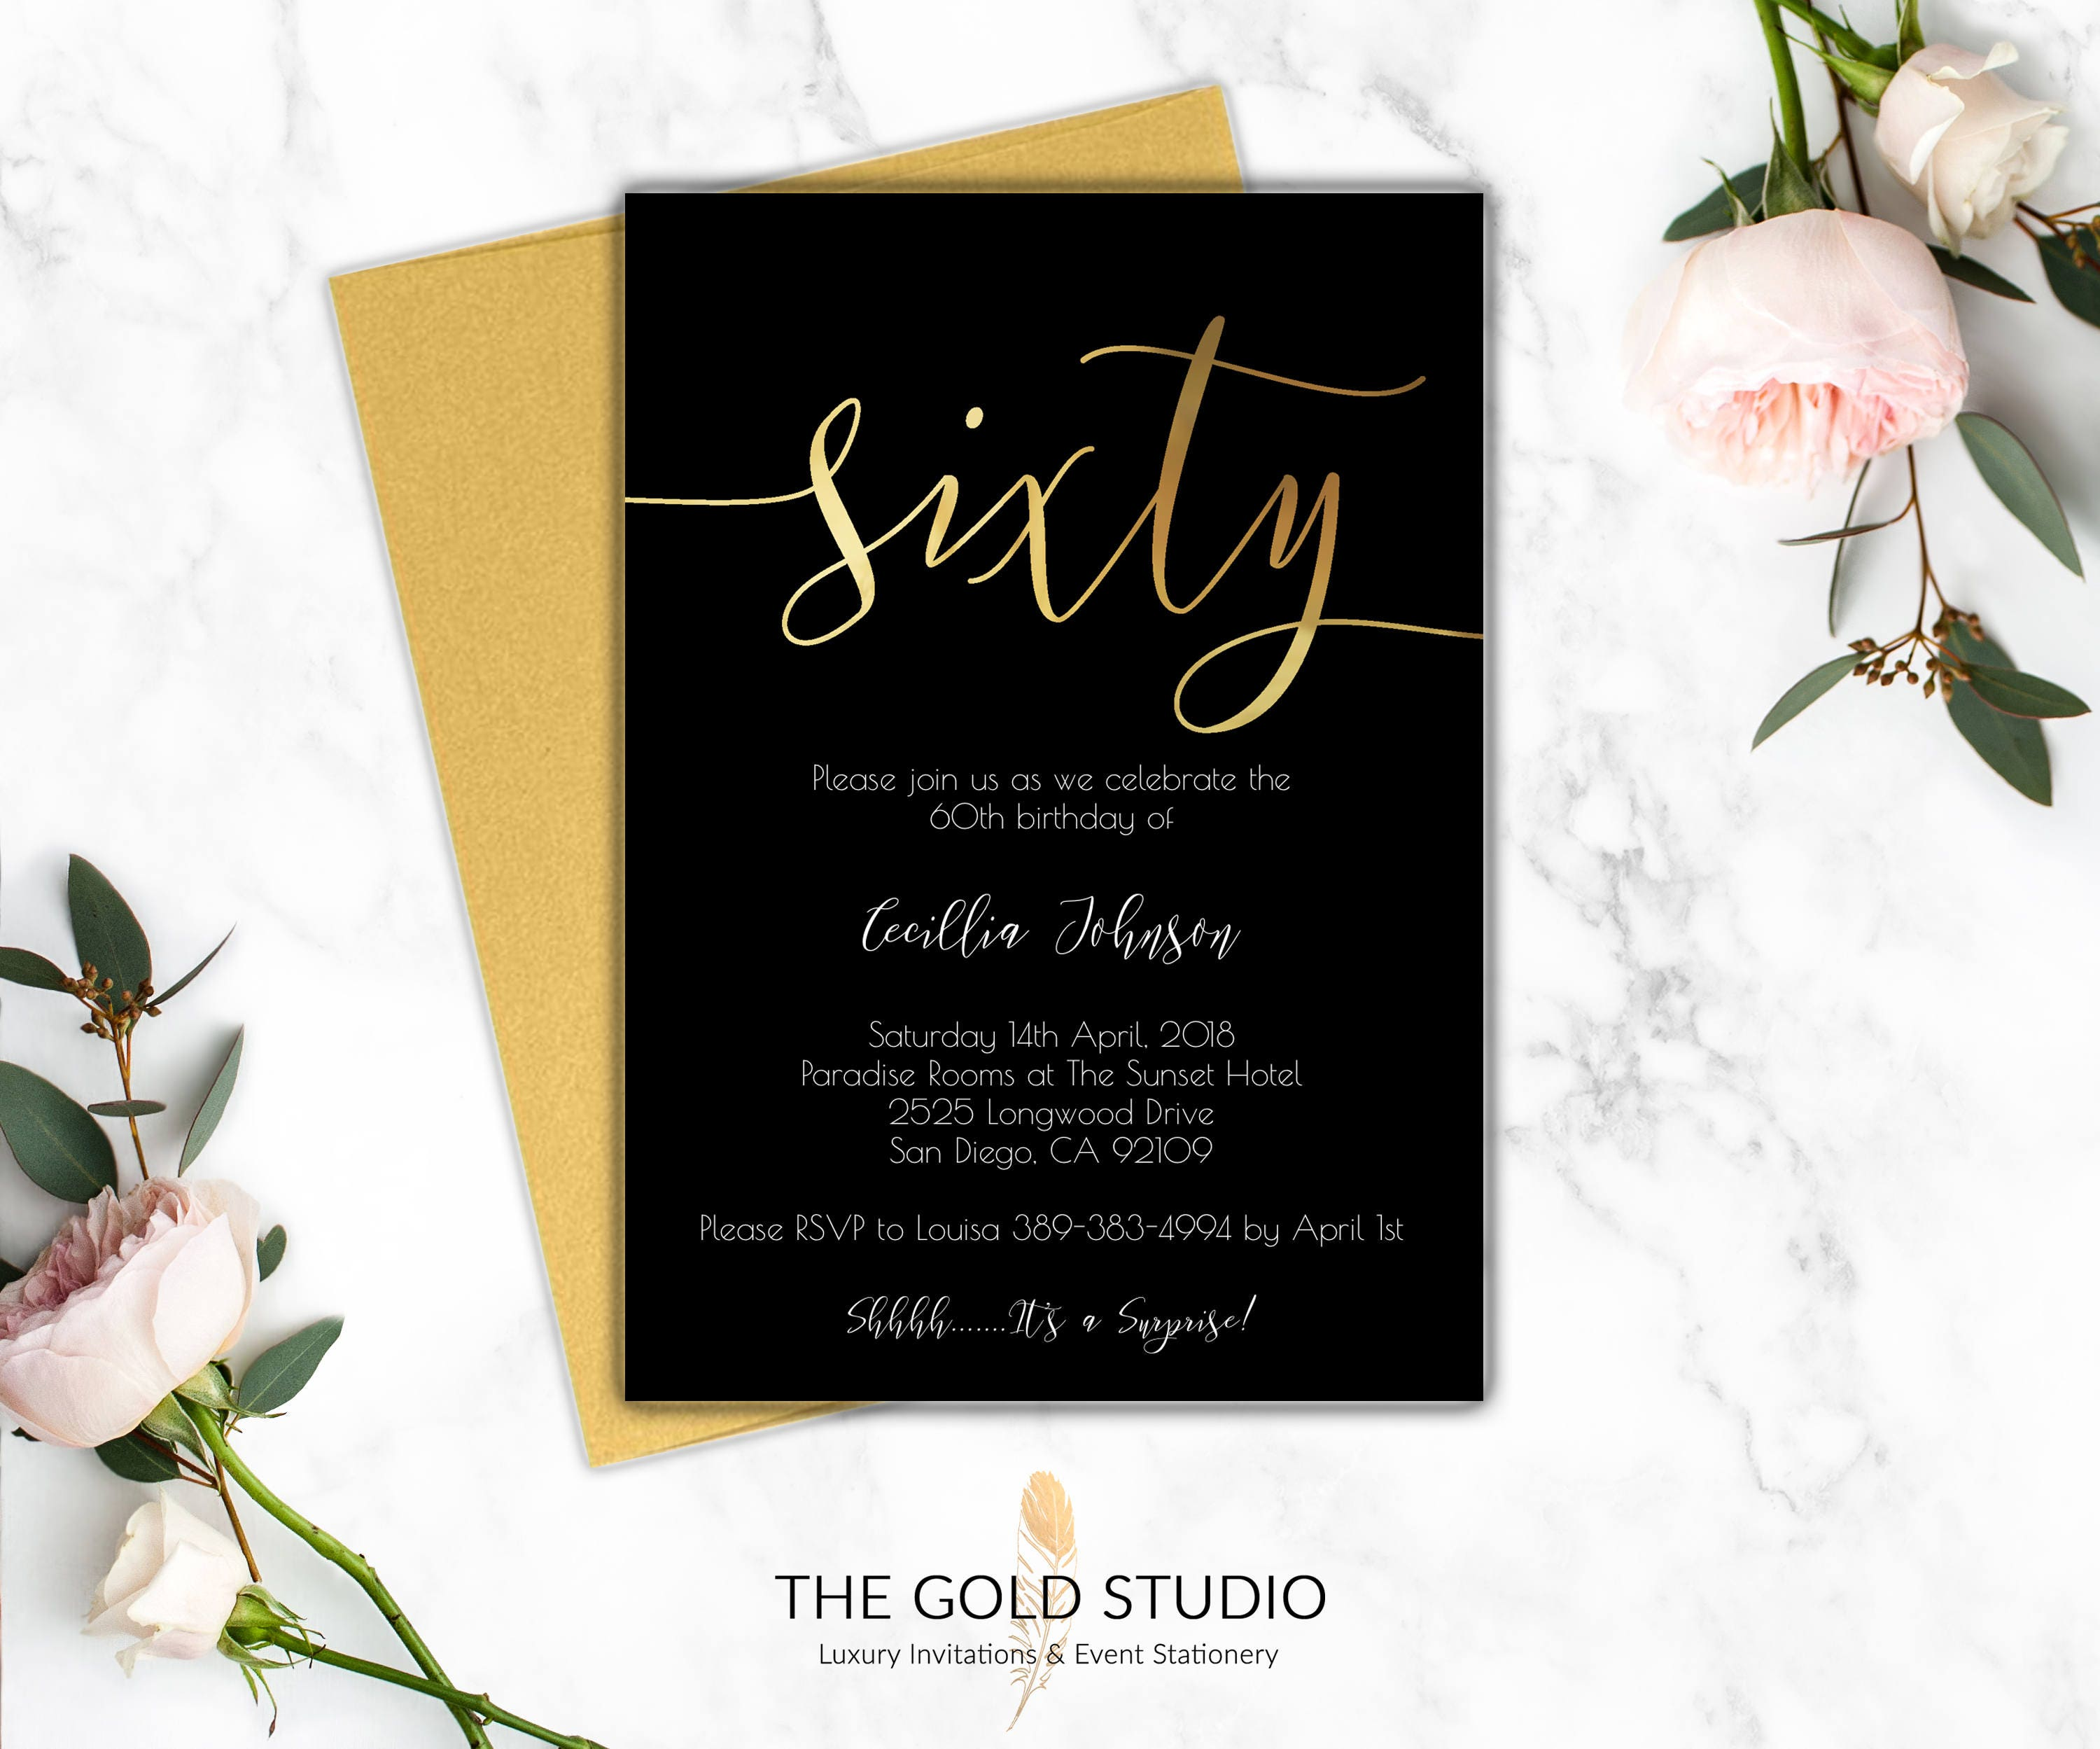 60th birthday invitations modern black gold printed invitations 60th birthday invitations modern black gold printed invitations sixty milestone birthday elegant 60 birthday party invitation filmwisefo